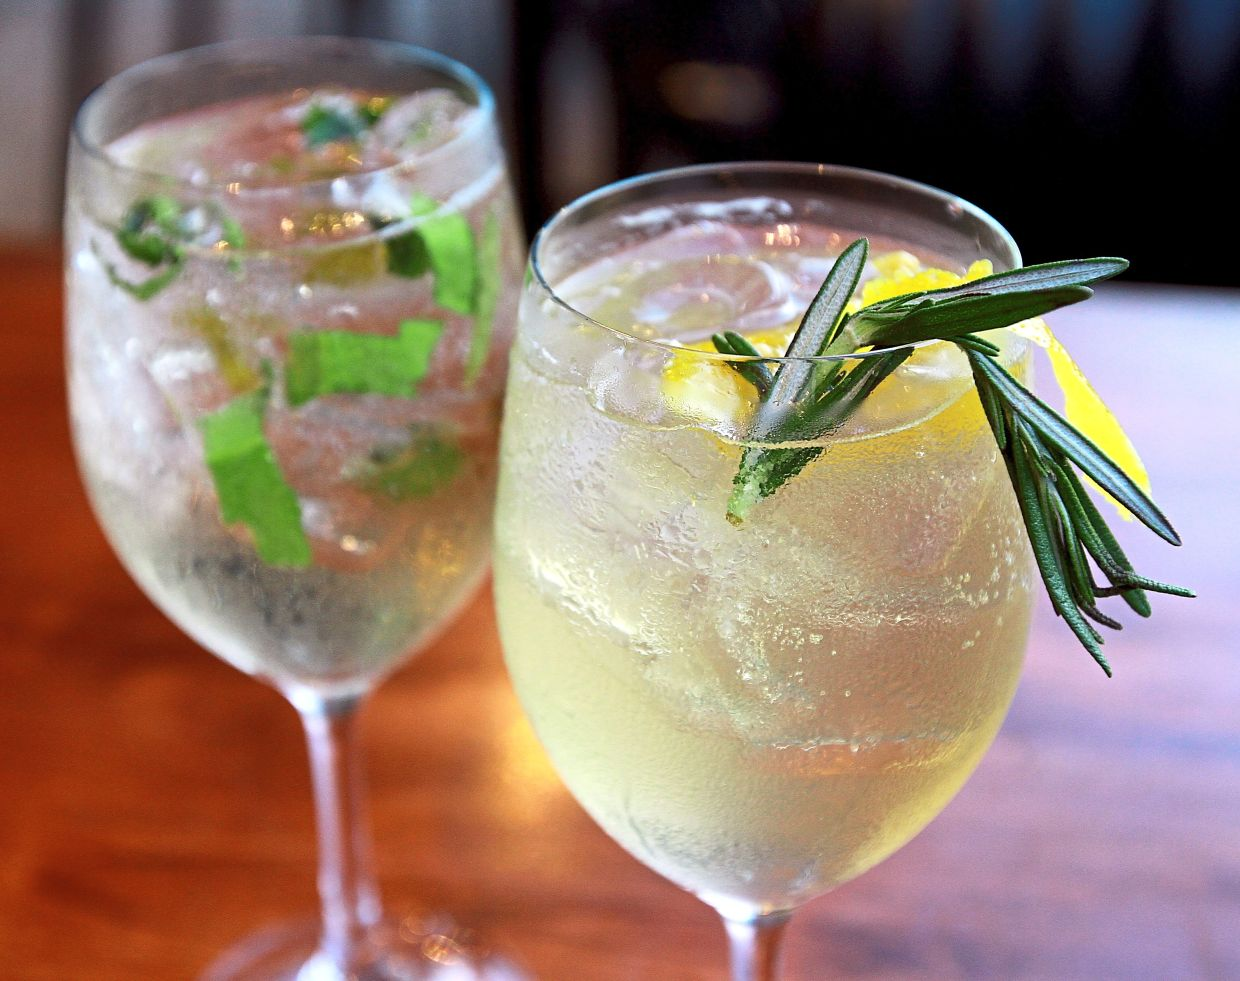 The pub's  version of happy hour offers cocktails with gin as the main ingredient, priced at only RM6 from 3pm to 7pm.